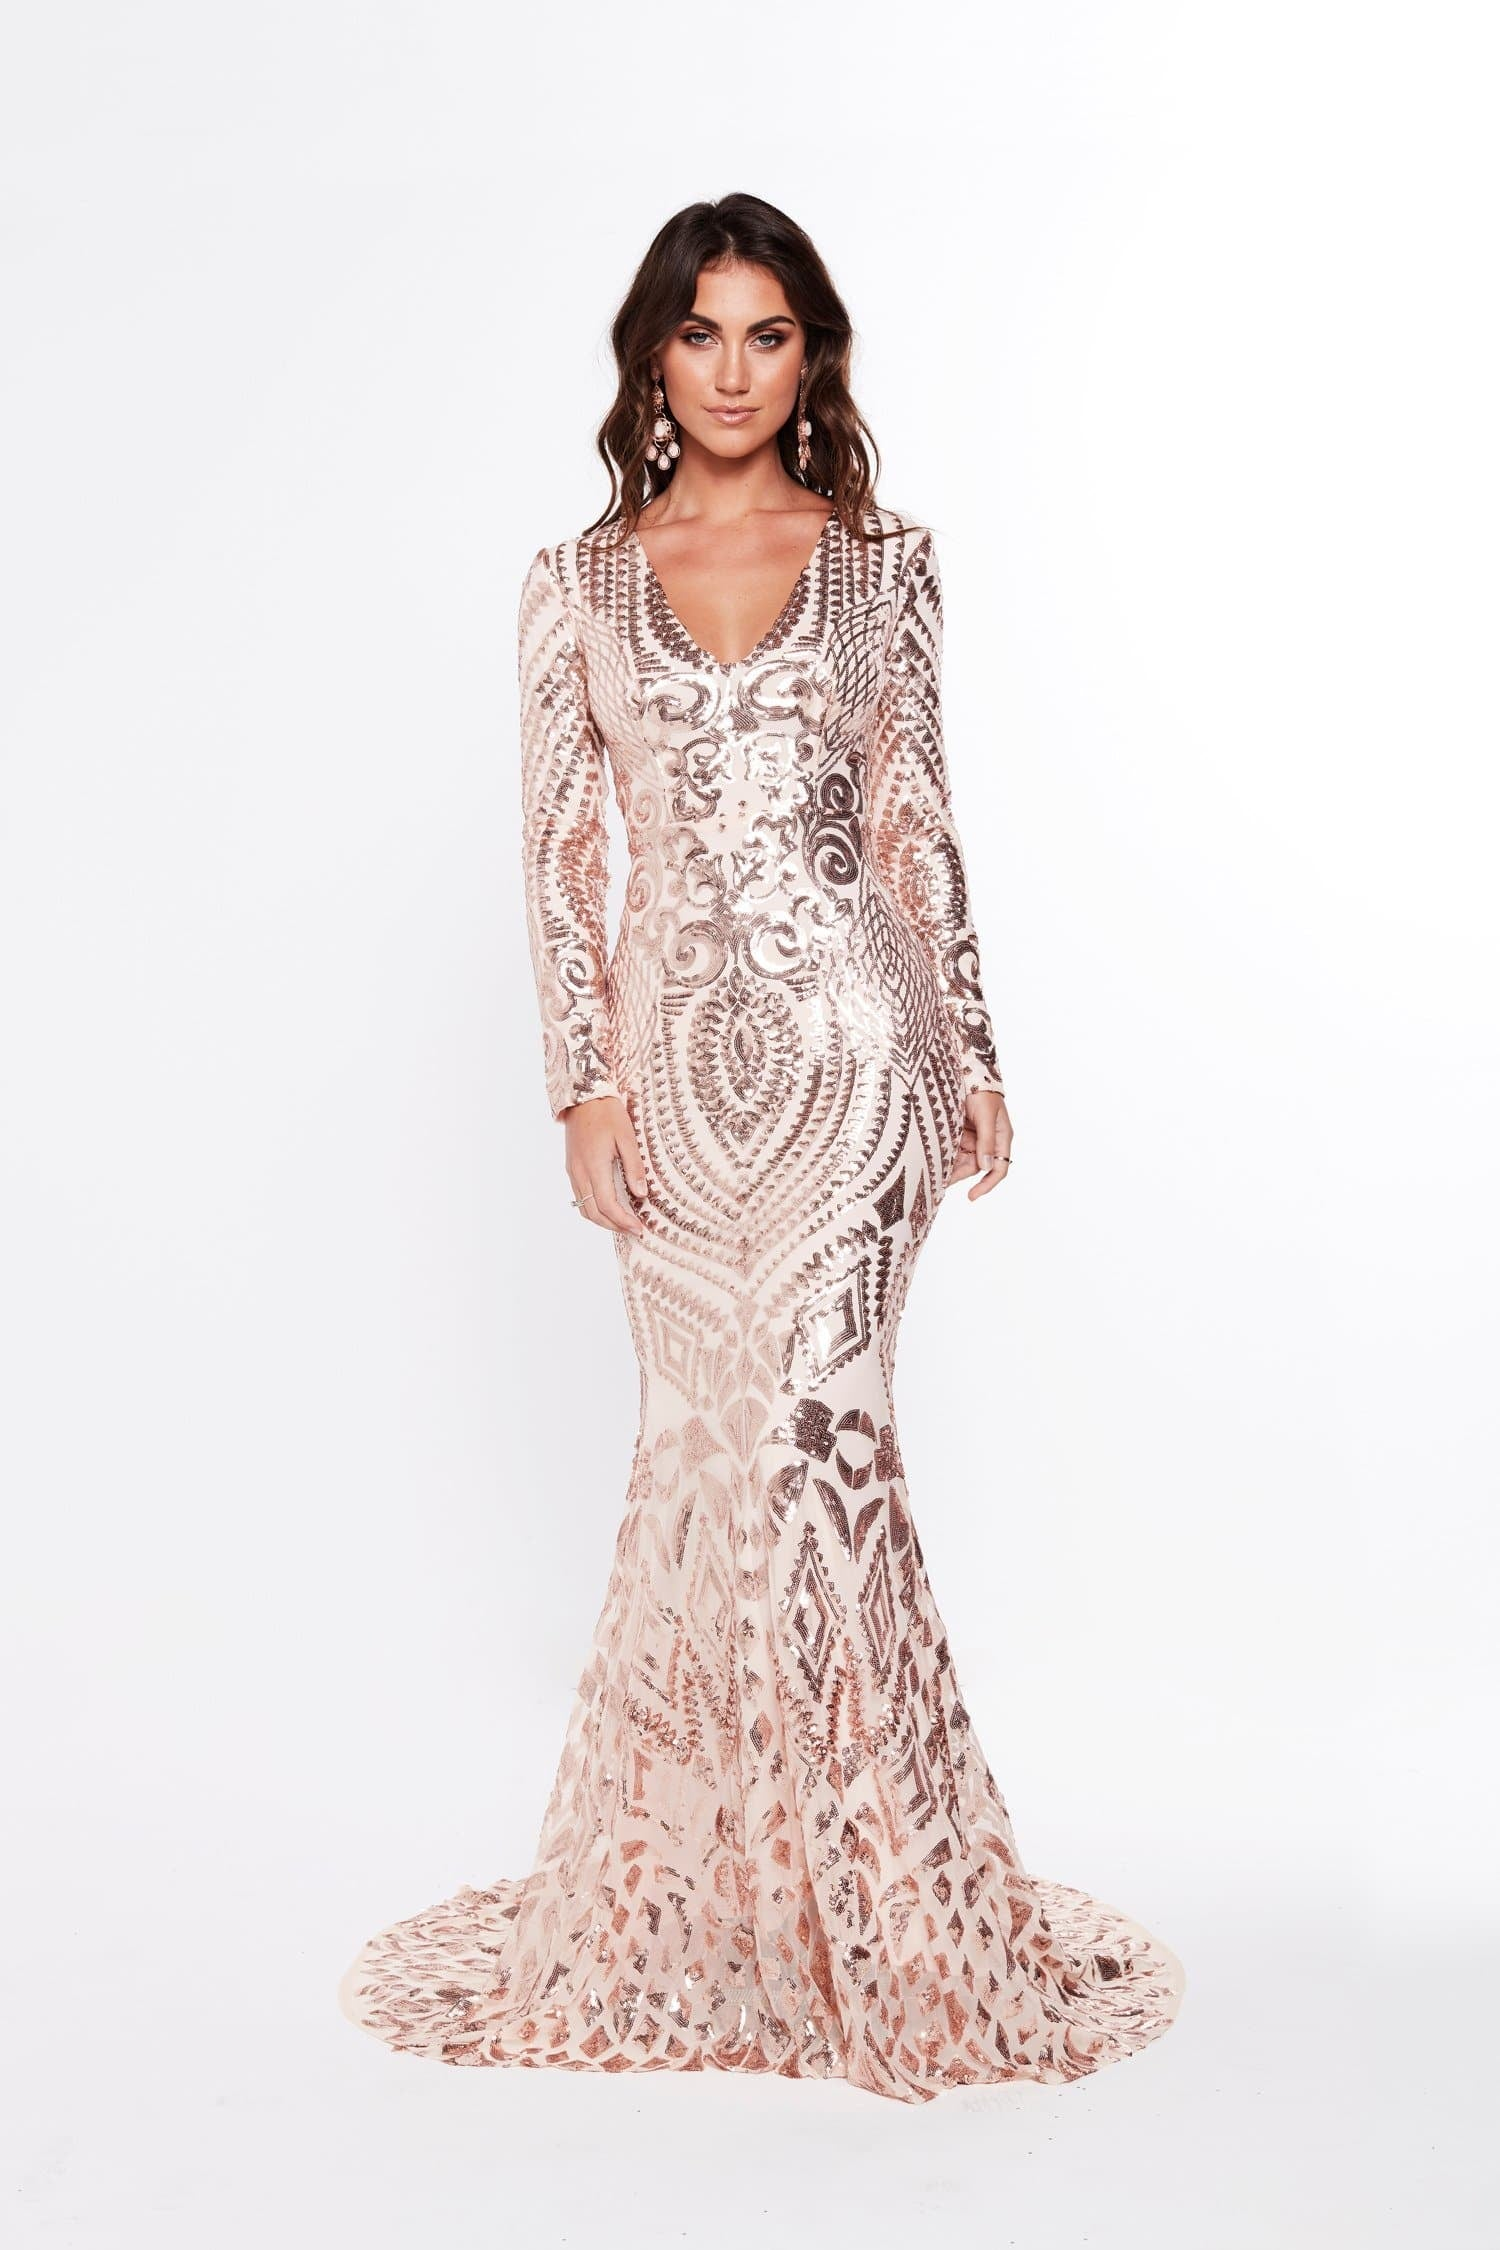 18d7b83c9a6457 A&N Julieta - Rose Gold Sequin Gown with Long Sleeves – A&N Luxe Label